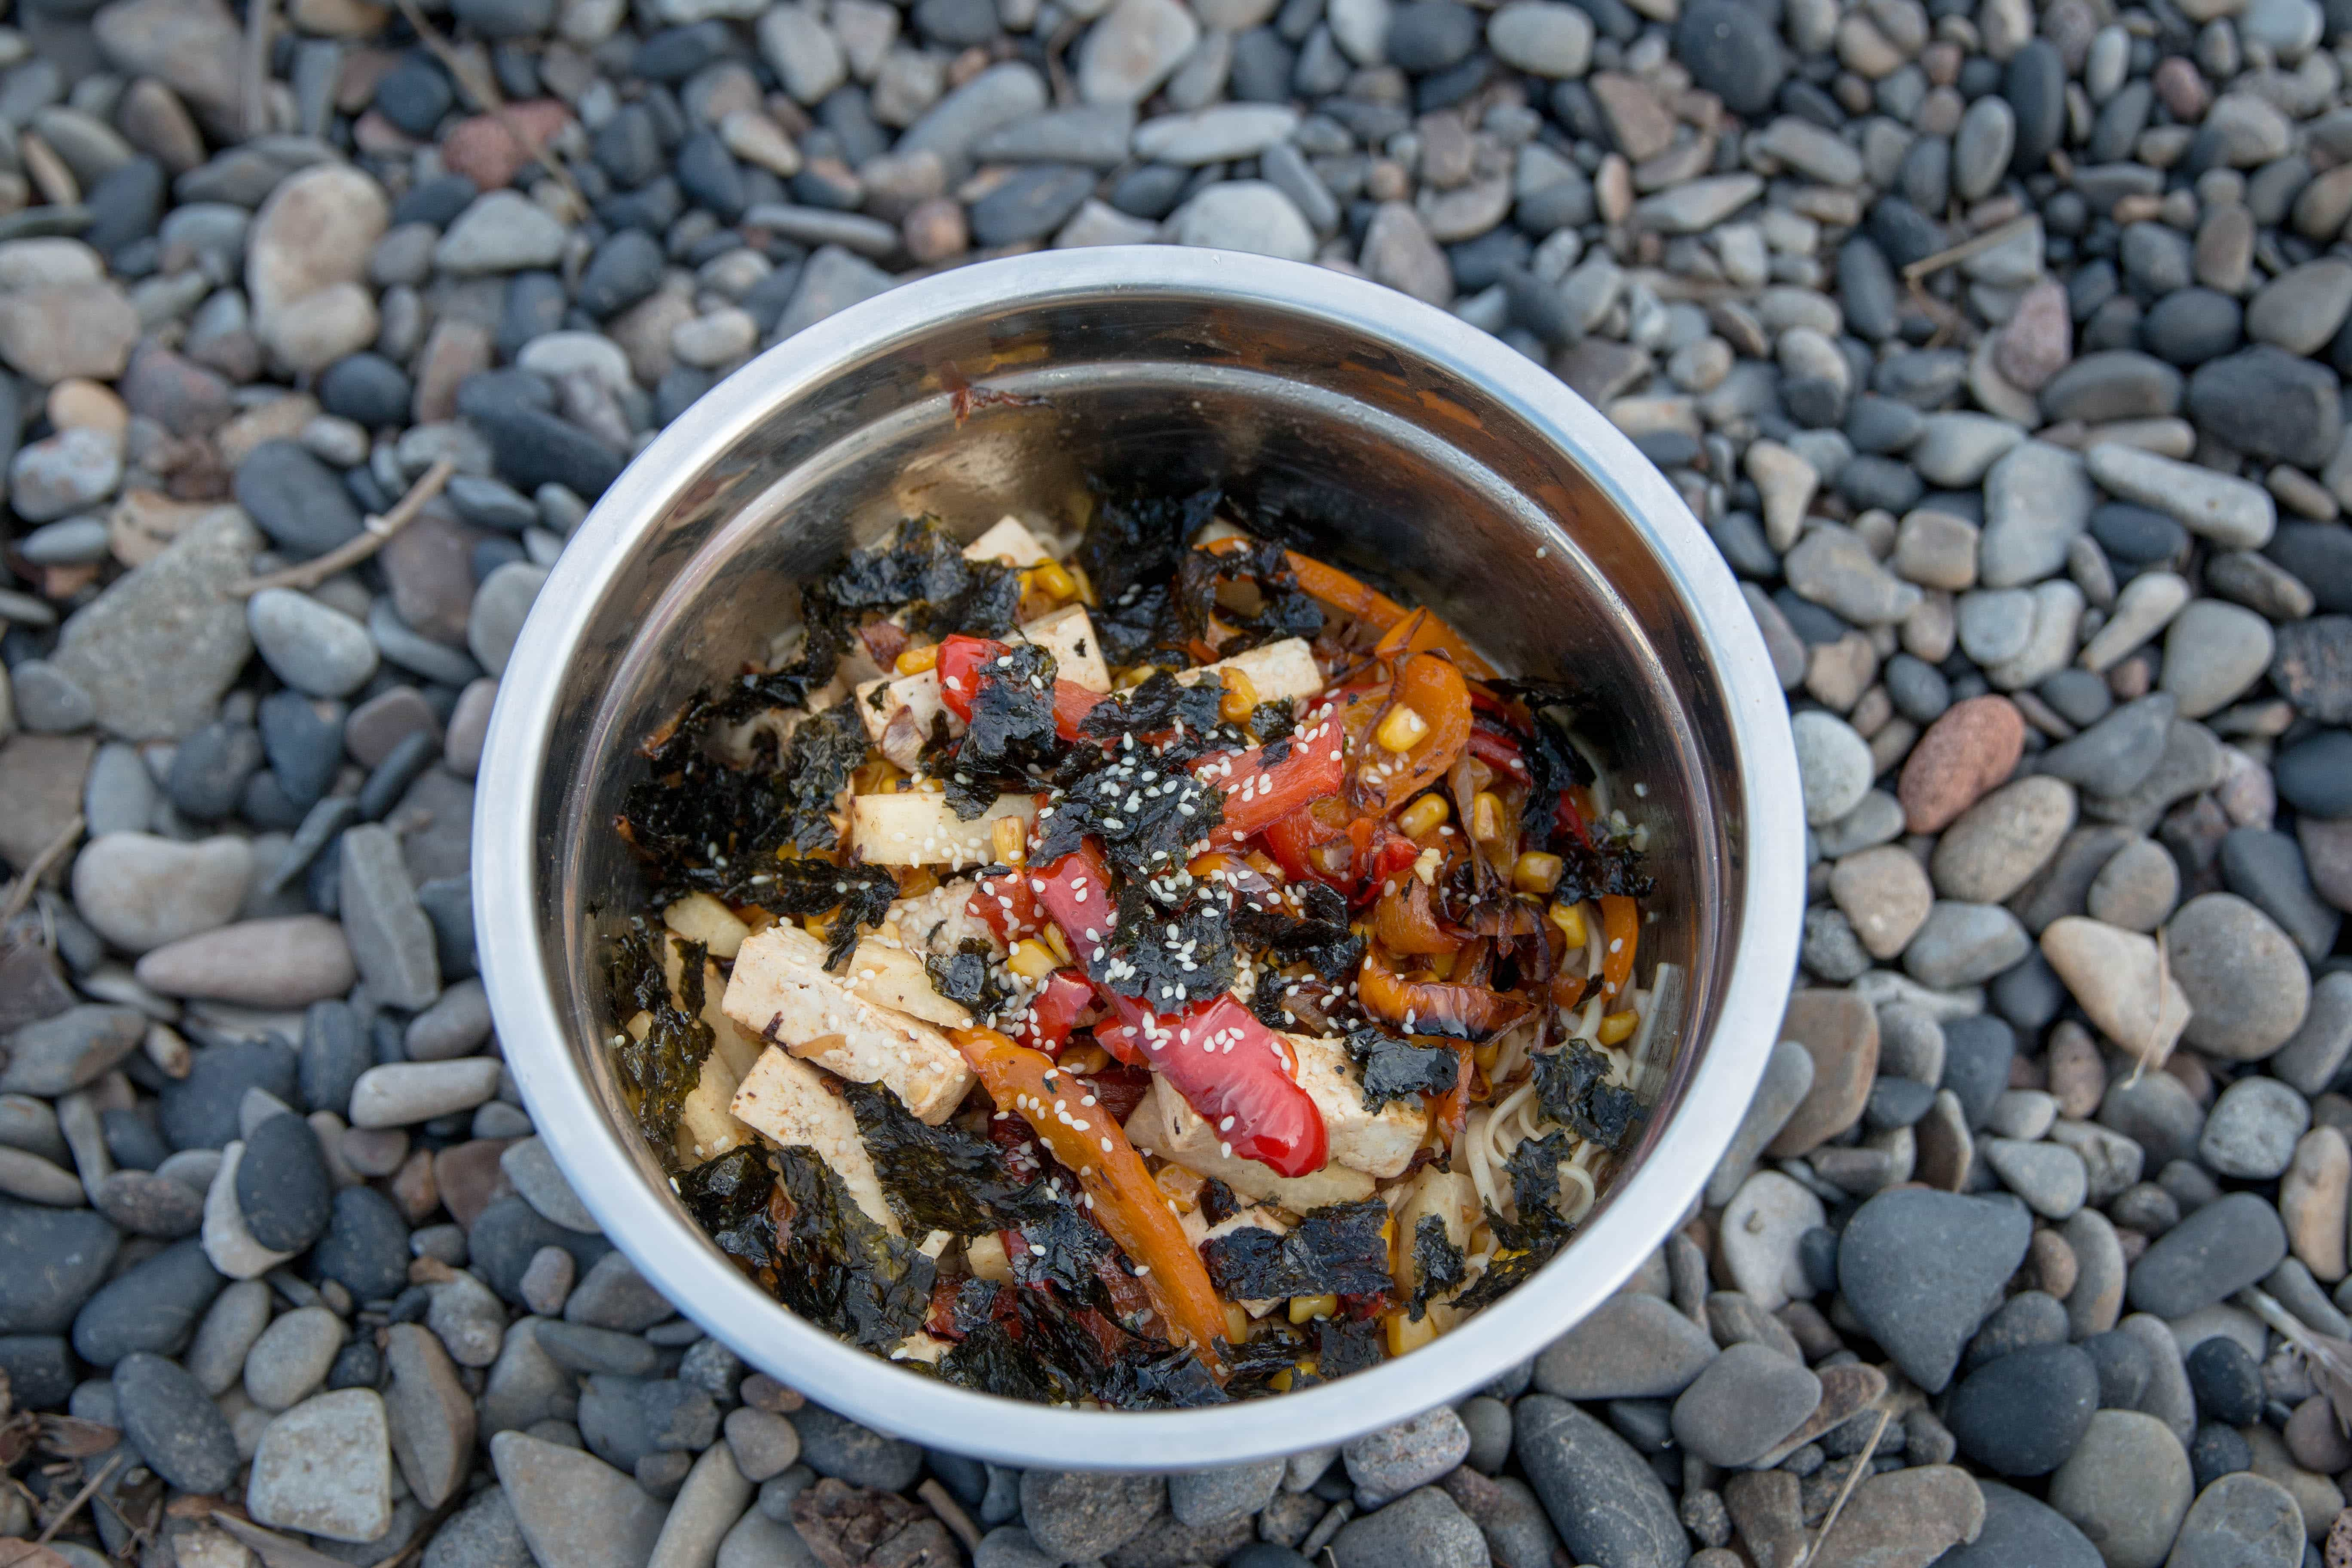 Tofu and seaweed salad in a bowl on a rocky surface